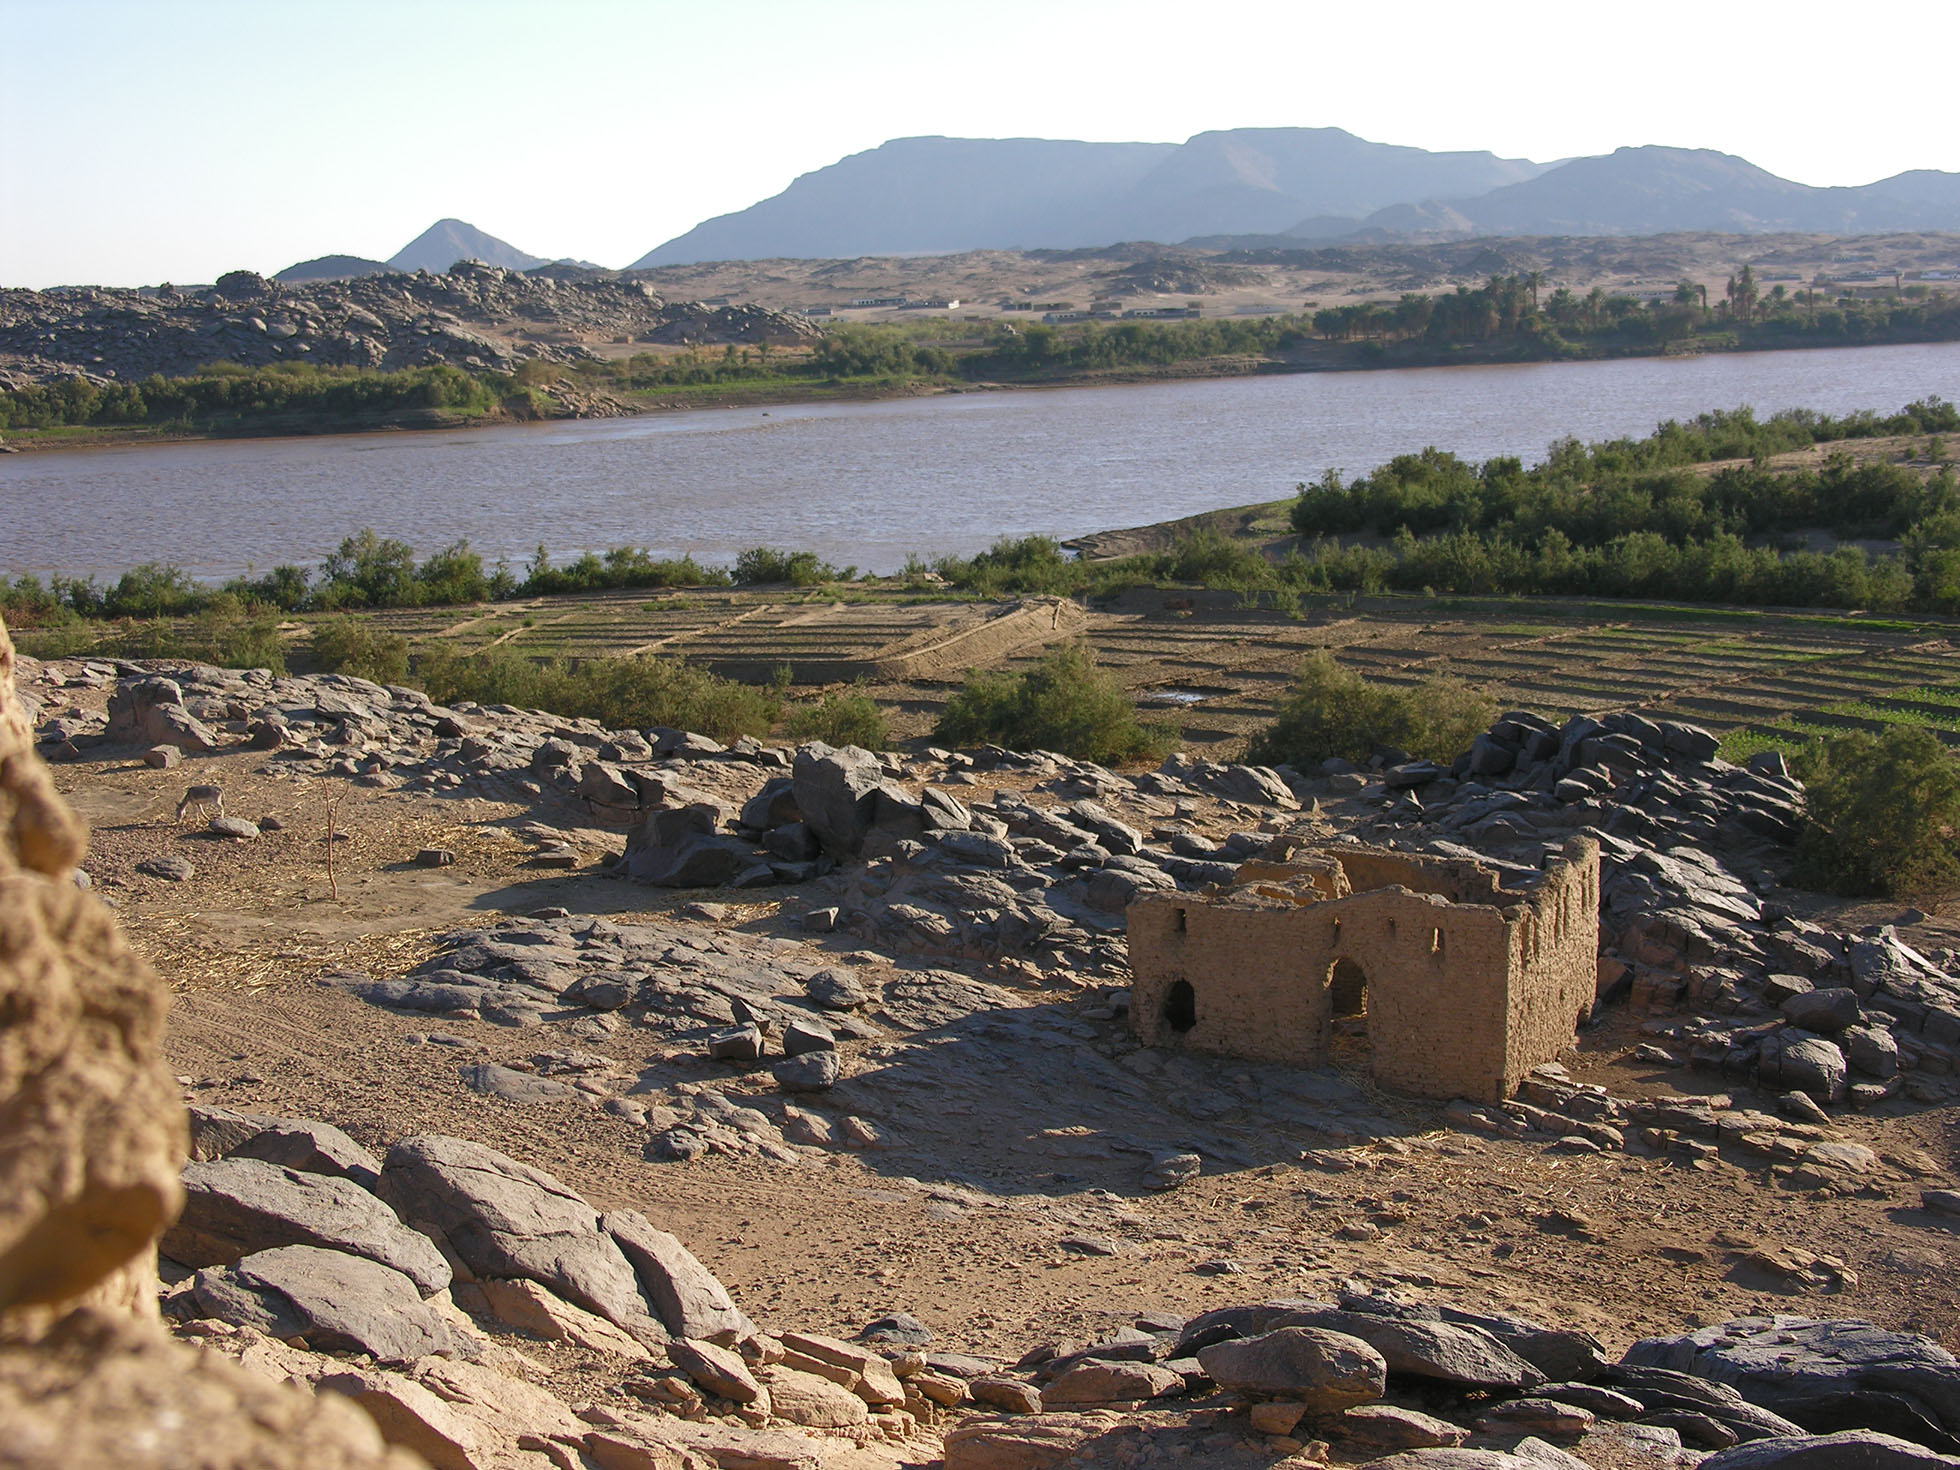 Photograph of the Kulubnarti Church within the wider landscape. The church itself is a ruin surrounded by rocks. Beyond it the cultiviation and river are visible.